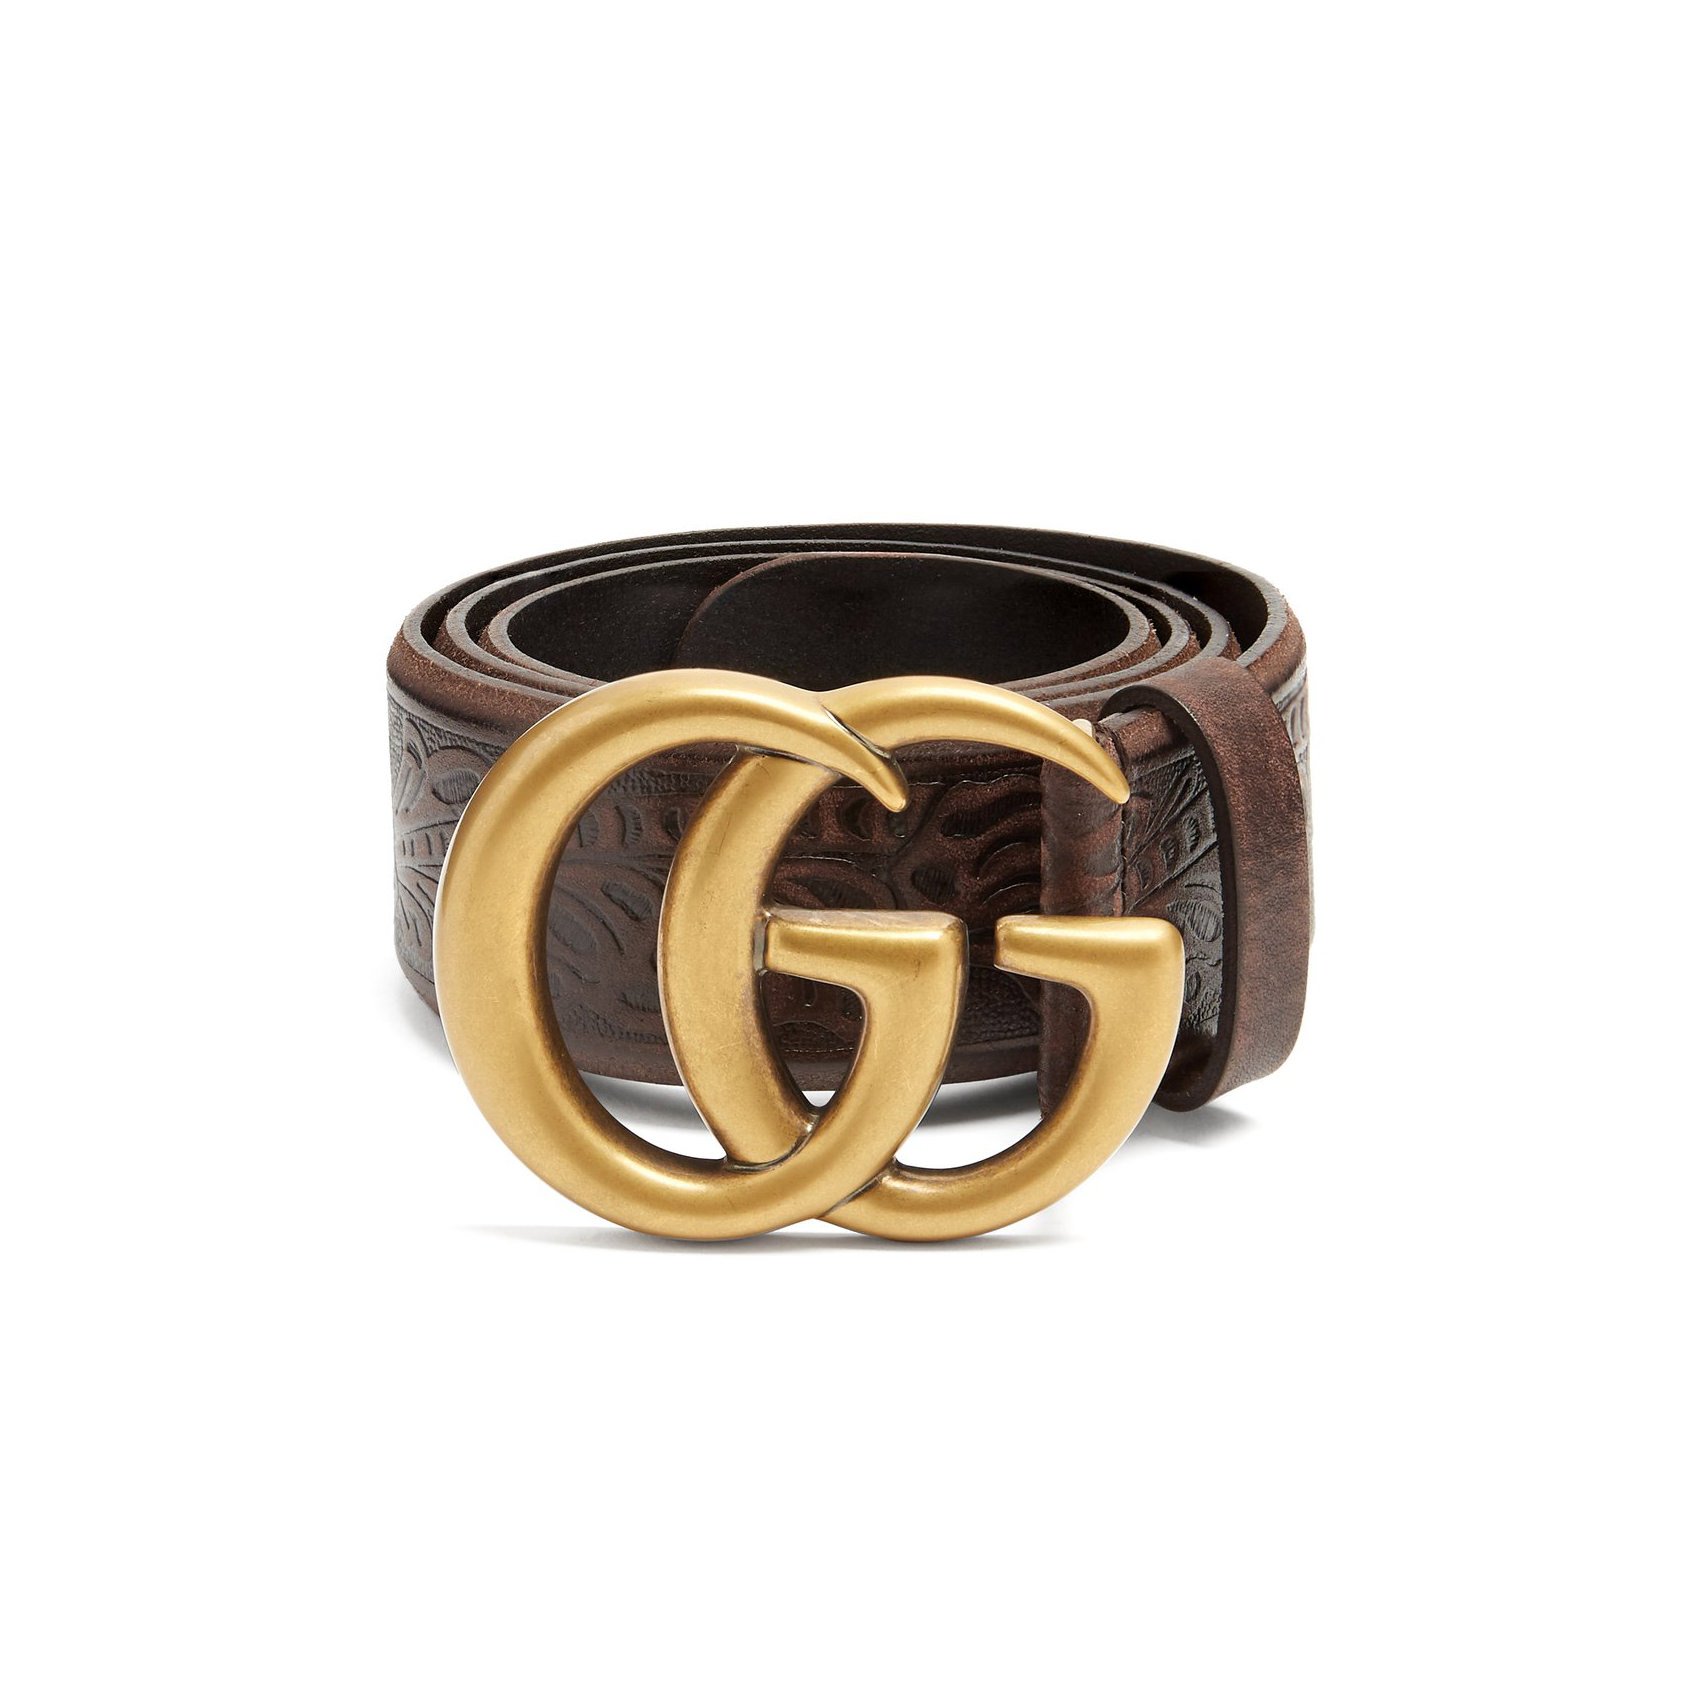 GG Vintage 4cm leather belt